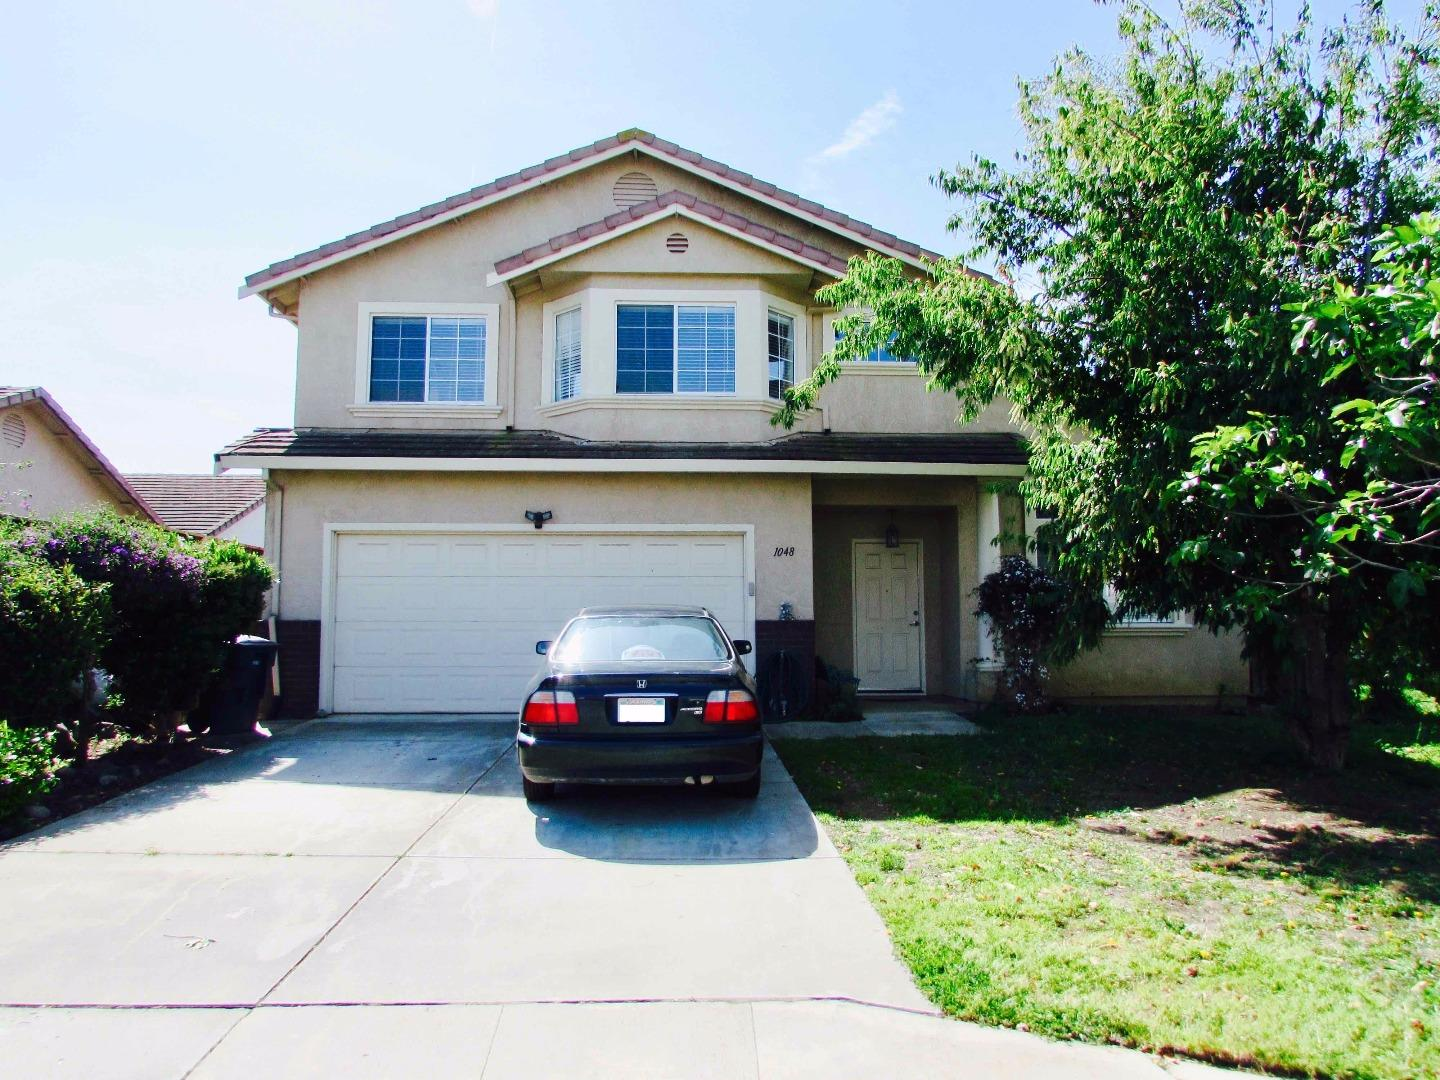 1048 Bison Way, SALINAS, CA 93905